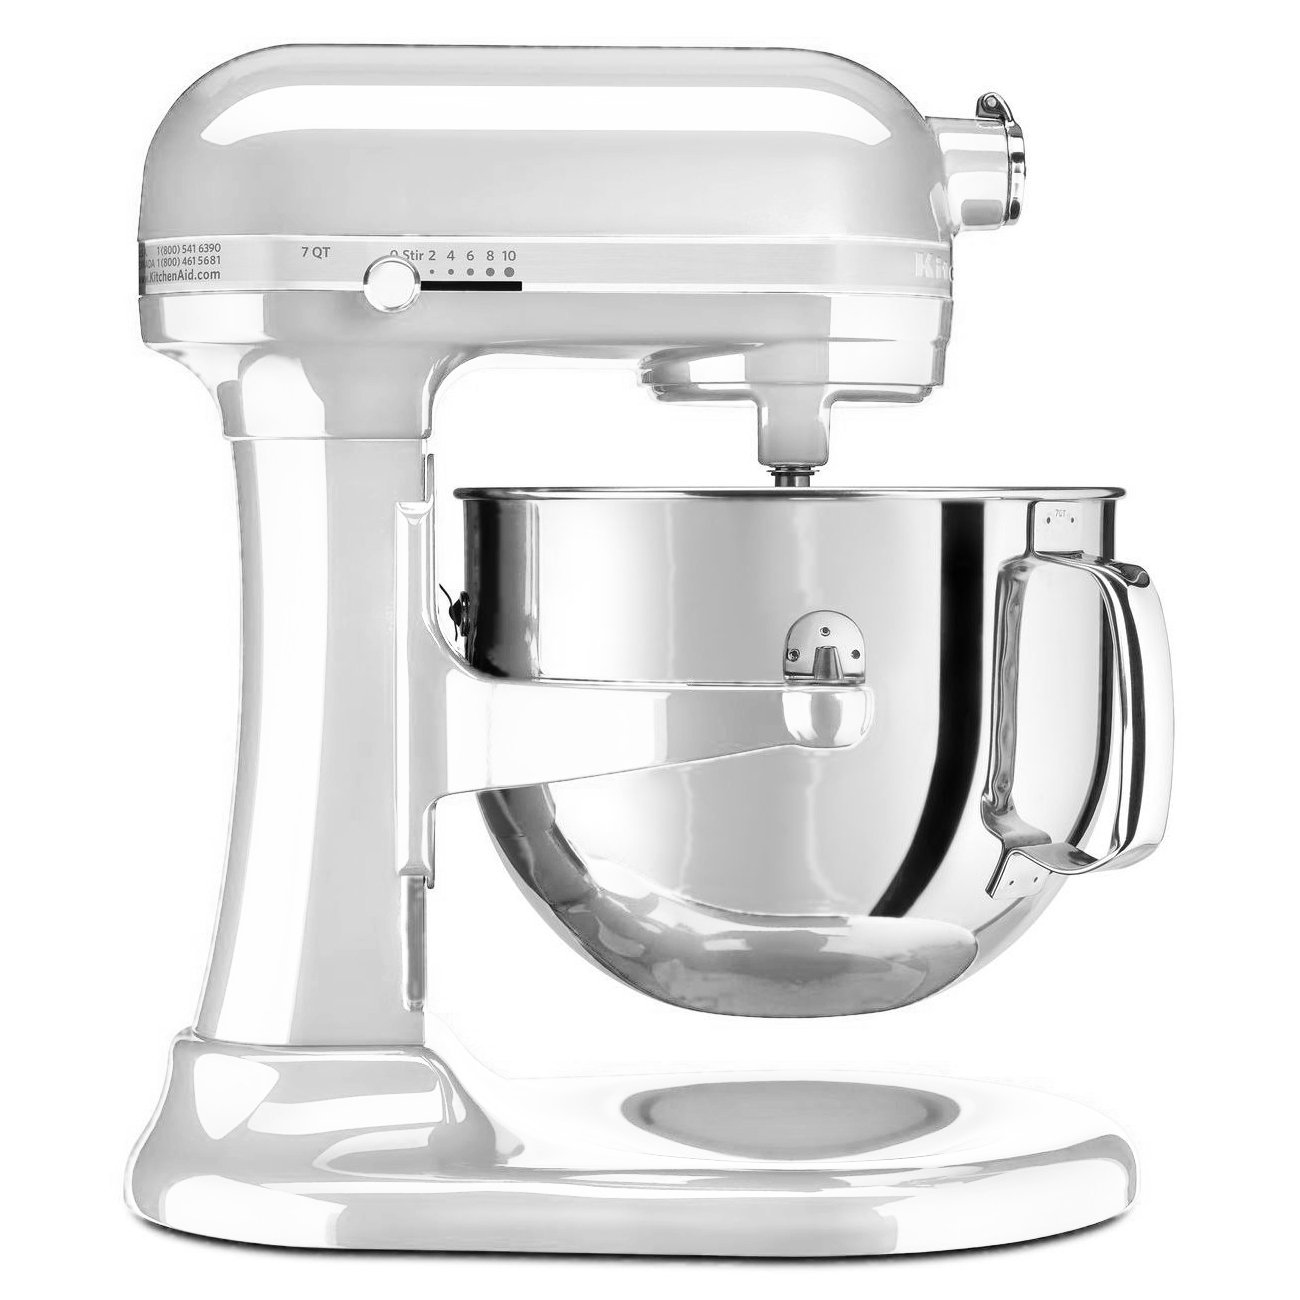 Kitchenaid Rrksm7581fp 7 Quart Pro Line Stand Mixer Frosted Pearl White Certified Refurbished